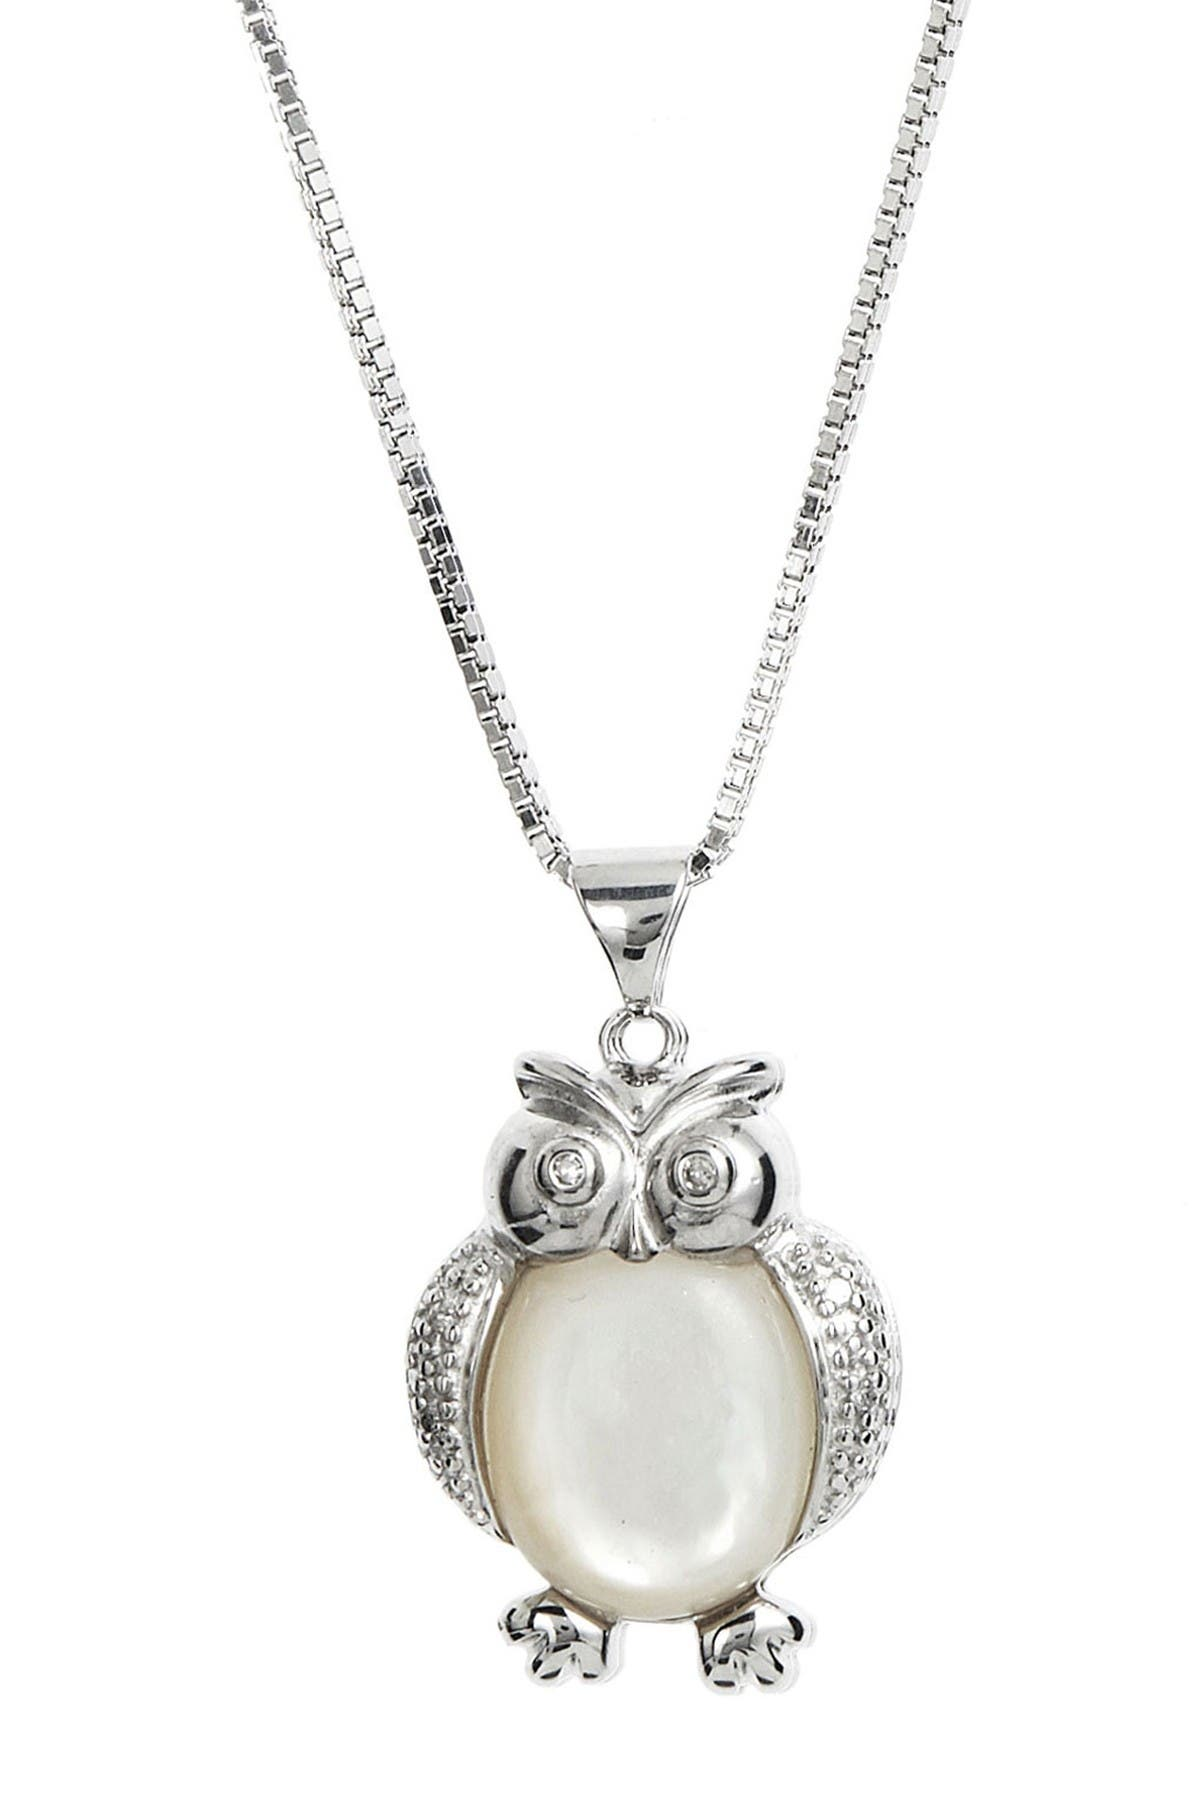 Image of Savvy Cie Sterling Silver Diamond & Mother of Pearl Owl Necklace